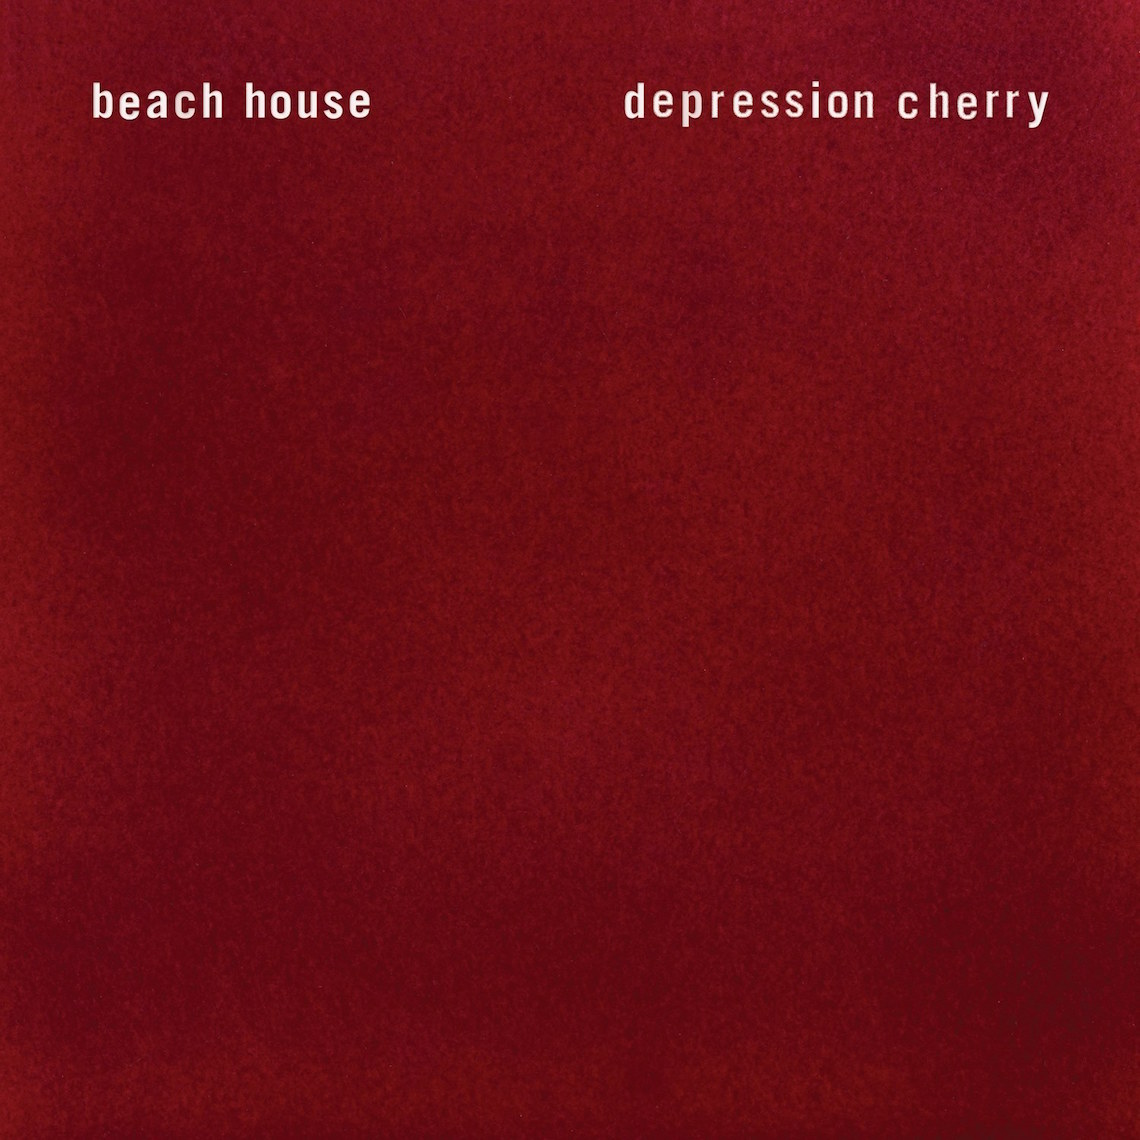 Space Song - Beach House [Depression Cherry]